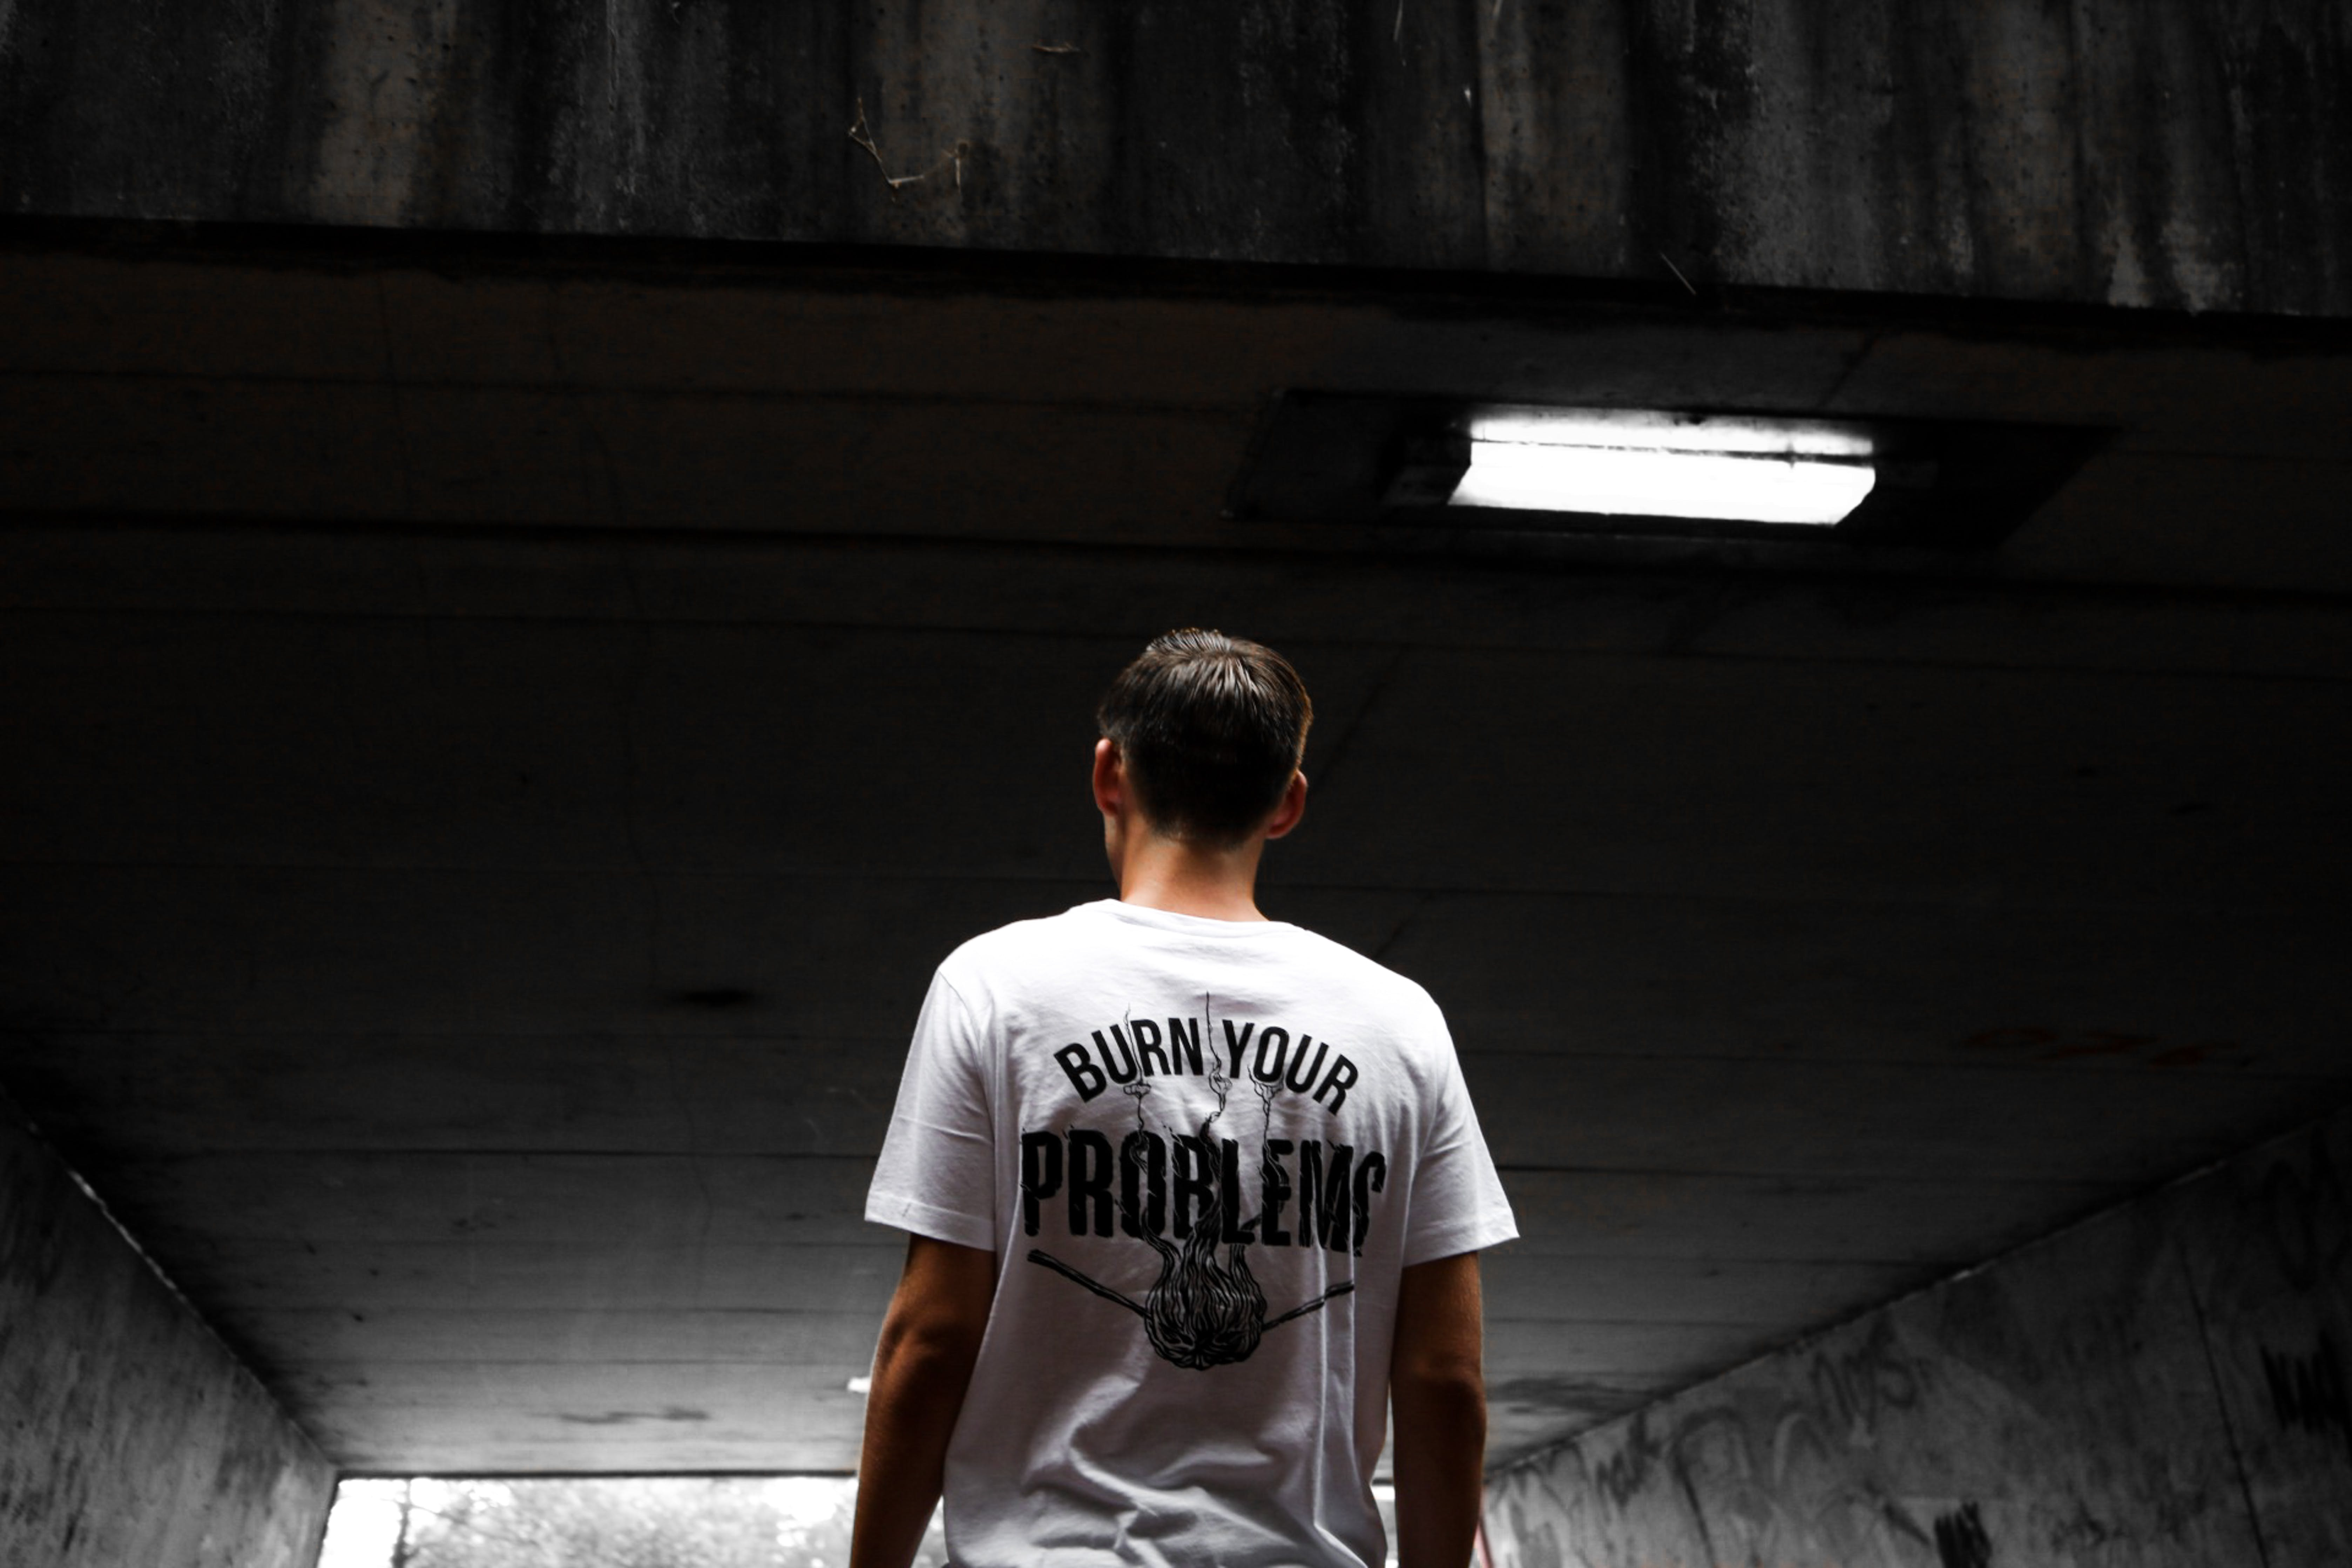 Man Wearing White and Black Burn Your Problems Printed T-shirt